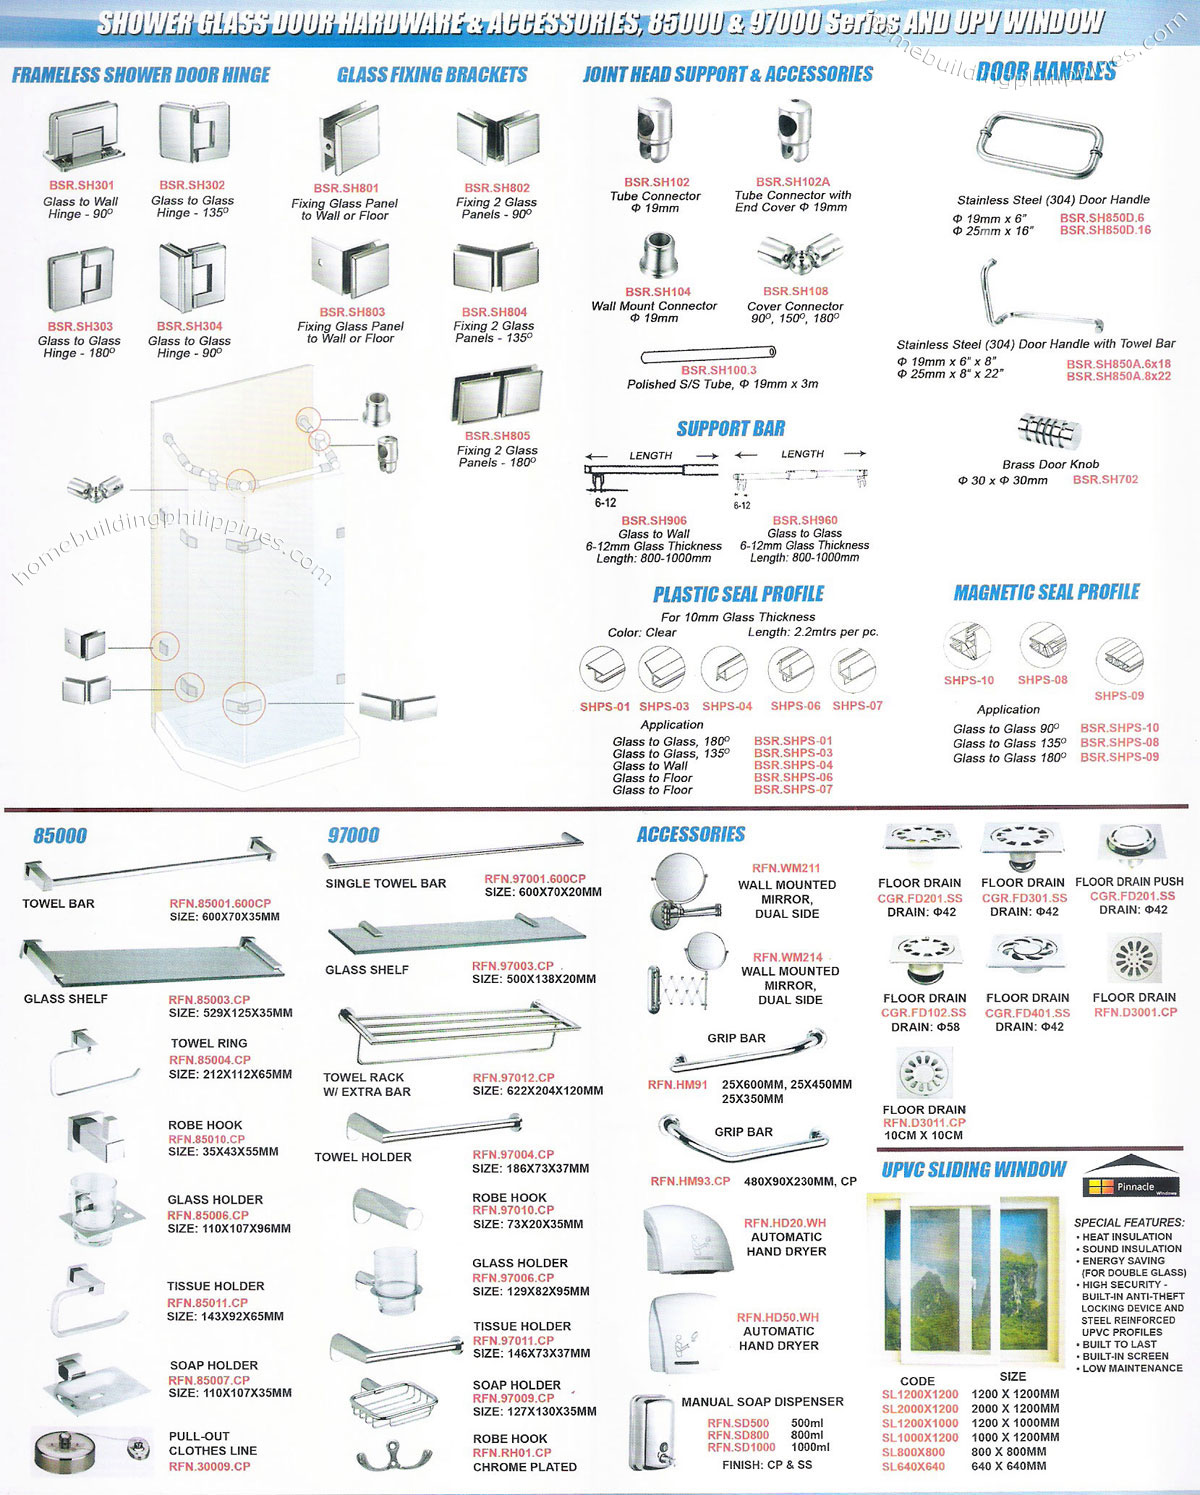 Shower Door Hardware, Bathroom Gl Shelf, Floor Drain, UPVC ... on shower rod hardware, construction hardware, handle hardware, shower heads product, glass hardware, shower head hardware, lighting hardware, sink hardware, shower bath, shower slides, frameless shower hardware, shower doors for fiberglass showers, shower base hardware, toilet hardware, shower blocks, shower plumbing hardware, shower hardware parts,